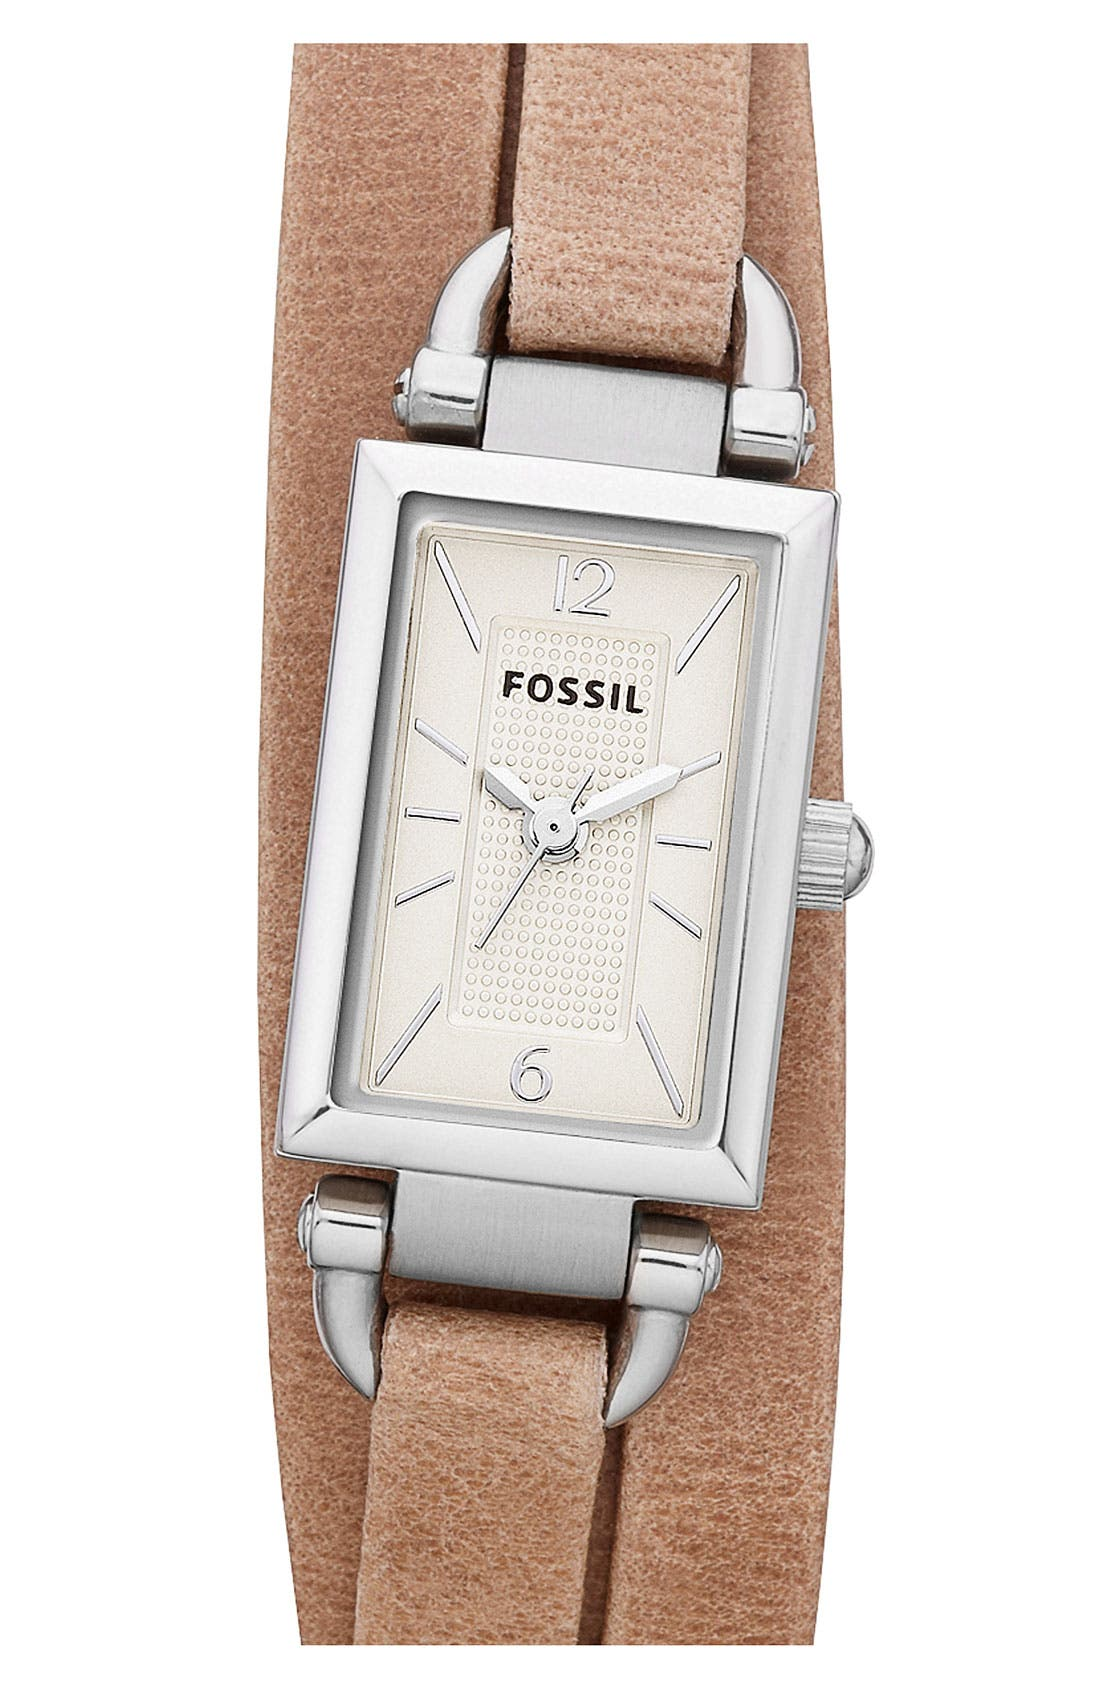 Main Image - Fossil 'Delaney' Leather Strap Watch, 16mm x 23mm